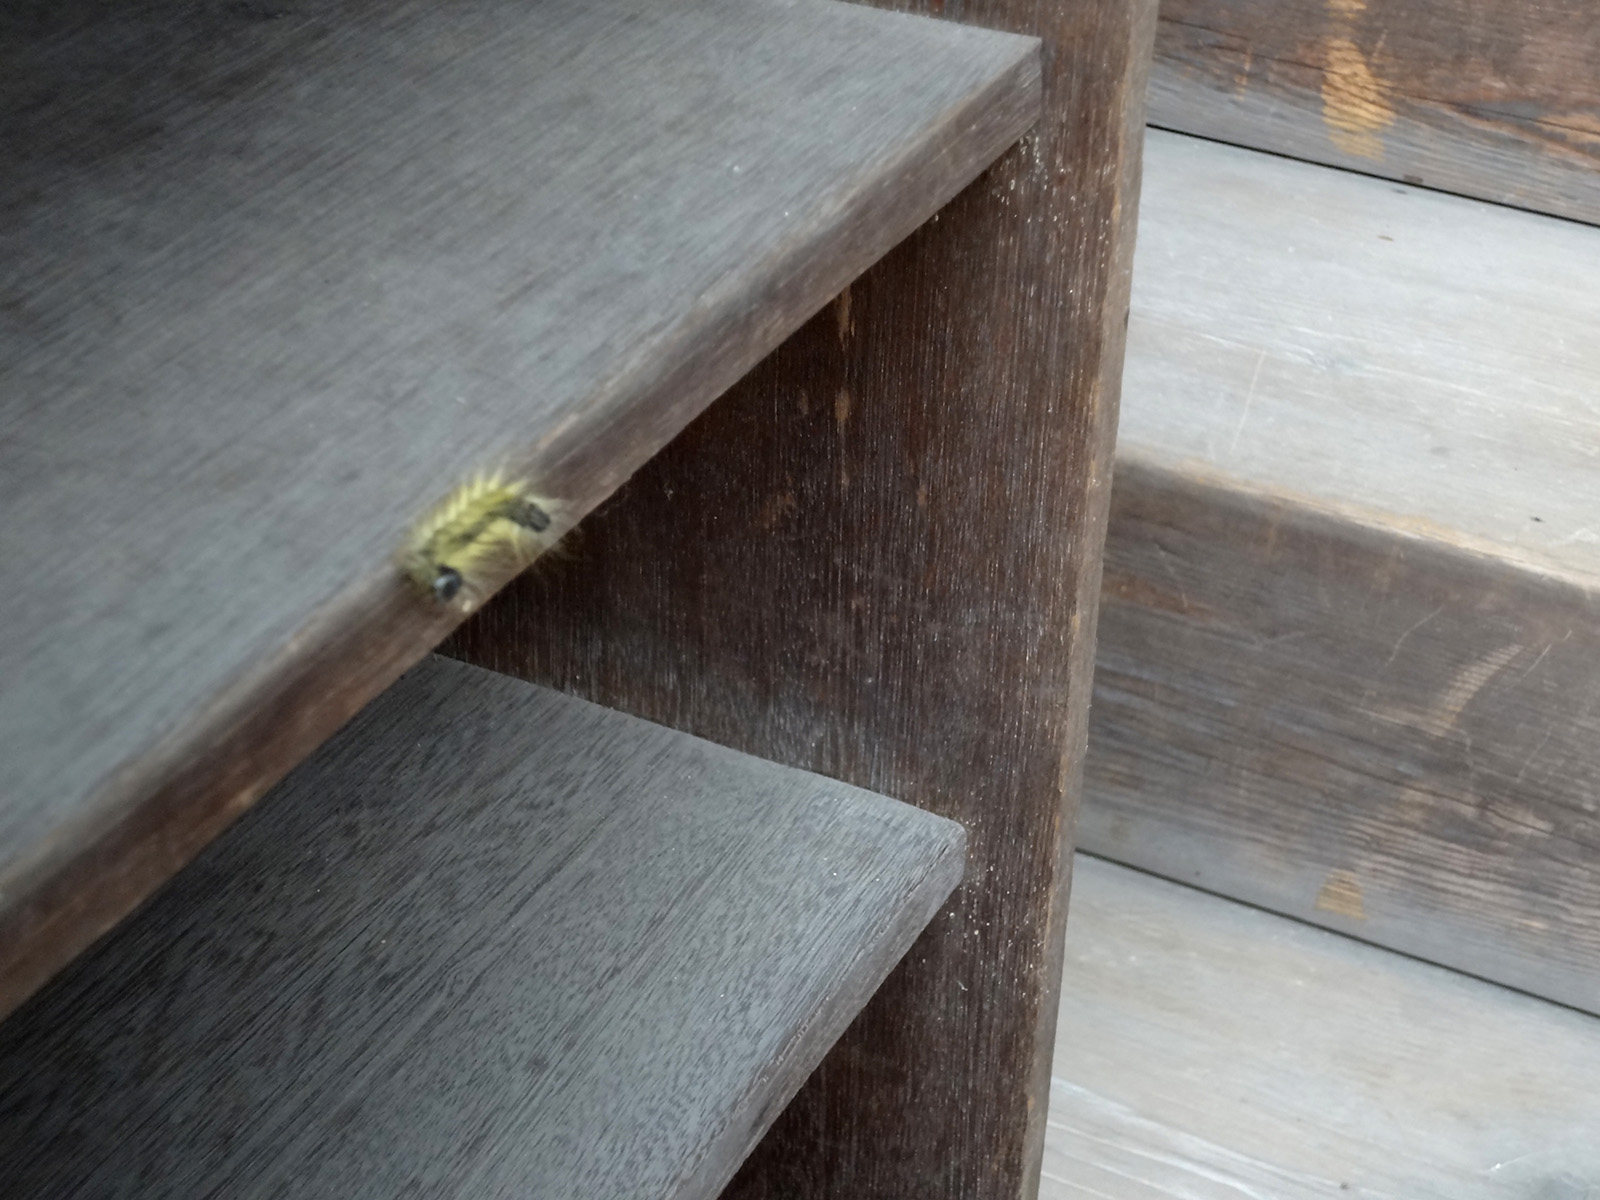 Blurry picture of caterpillar